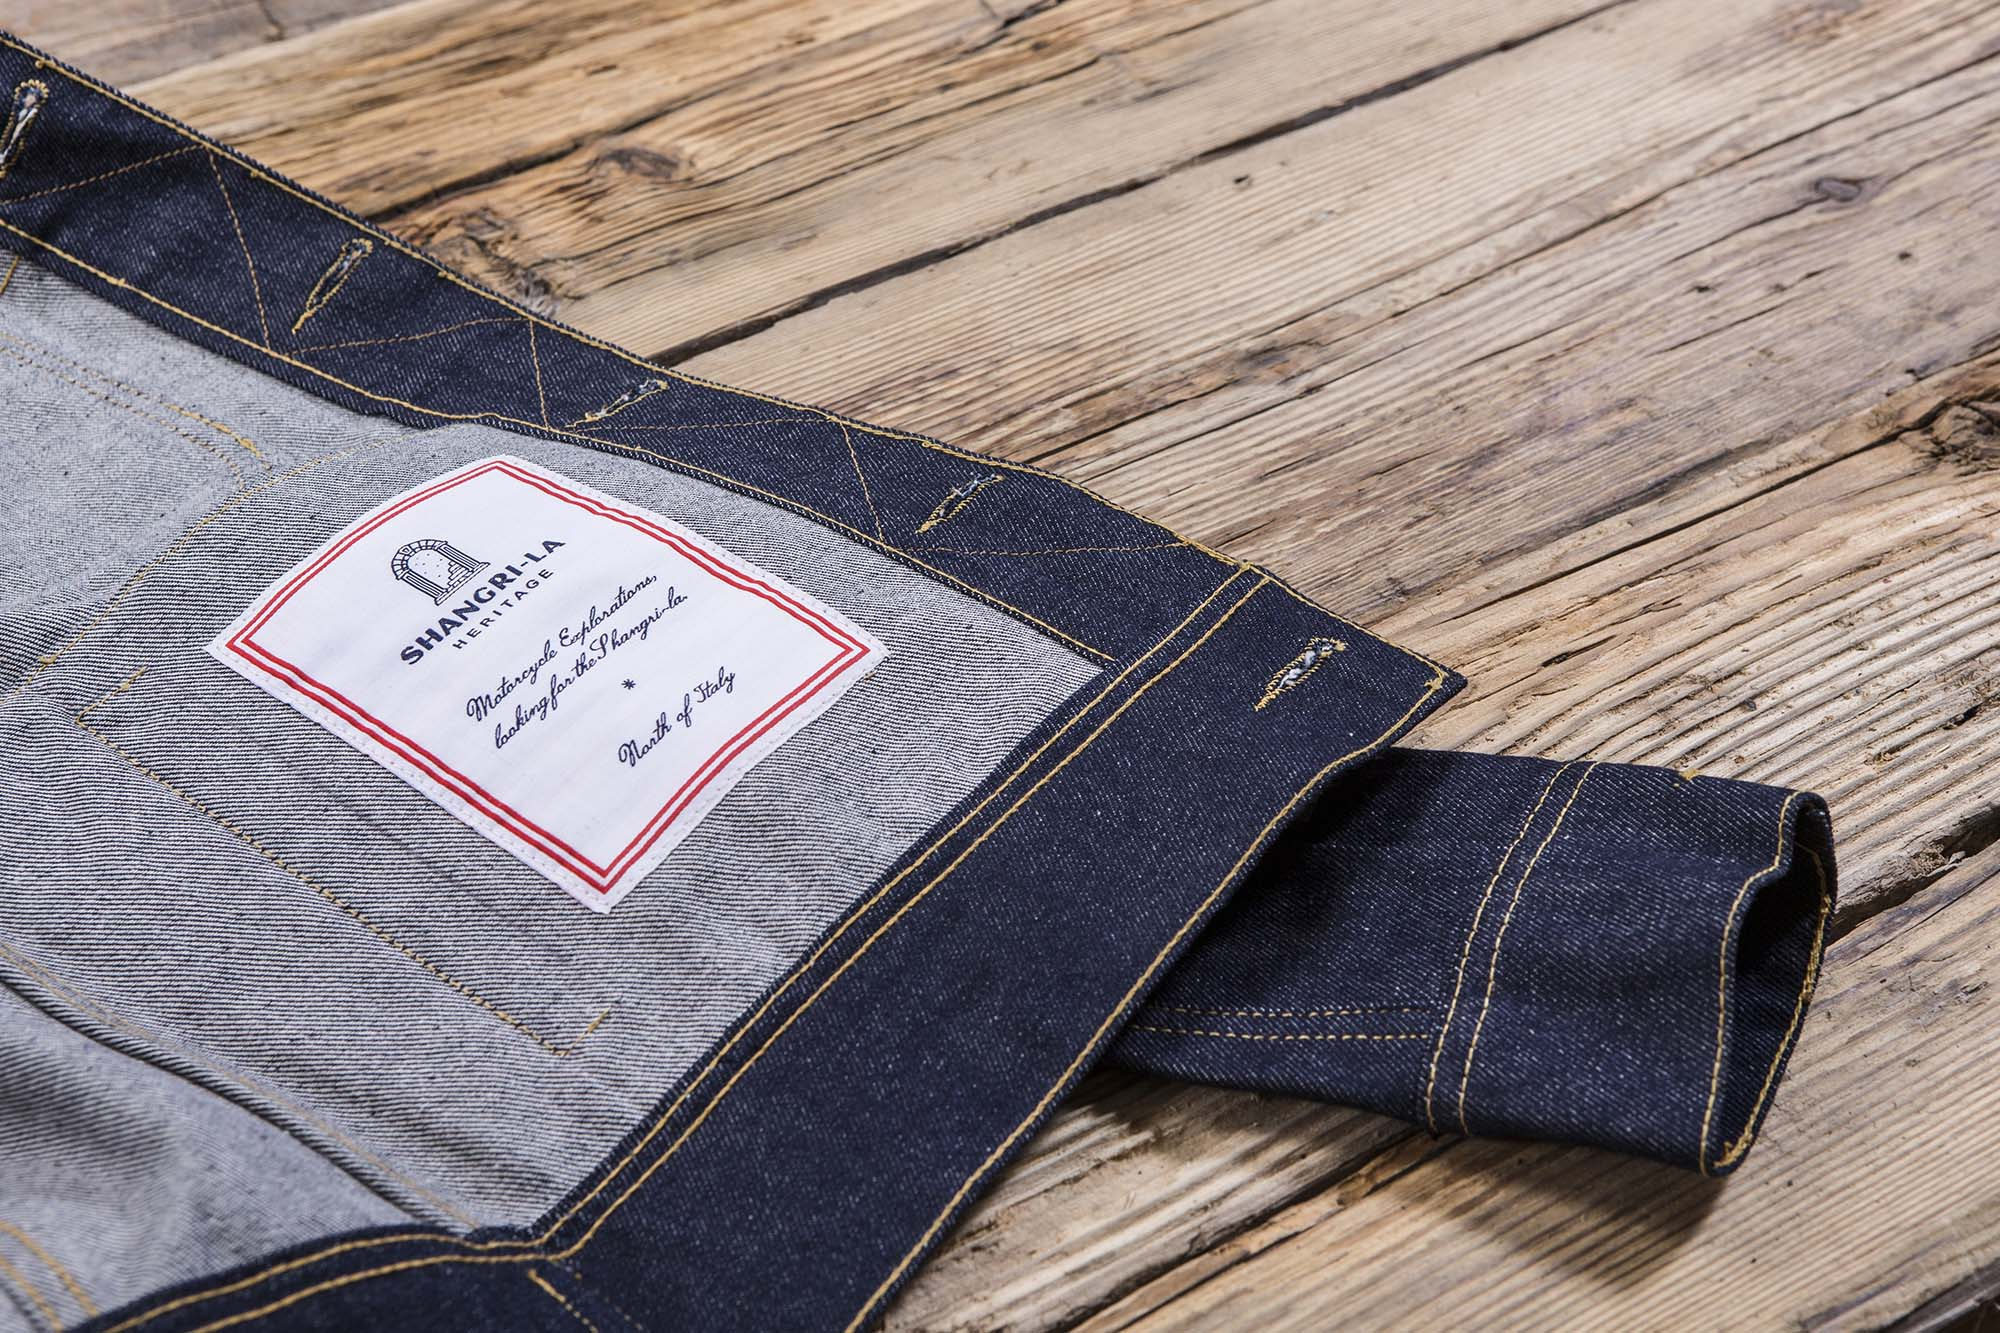 shangri-la-heritage-single-rider-denim-jacket-toro-seduto-still-life-label